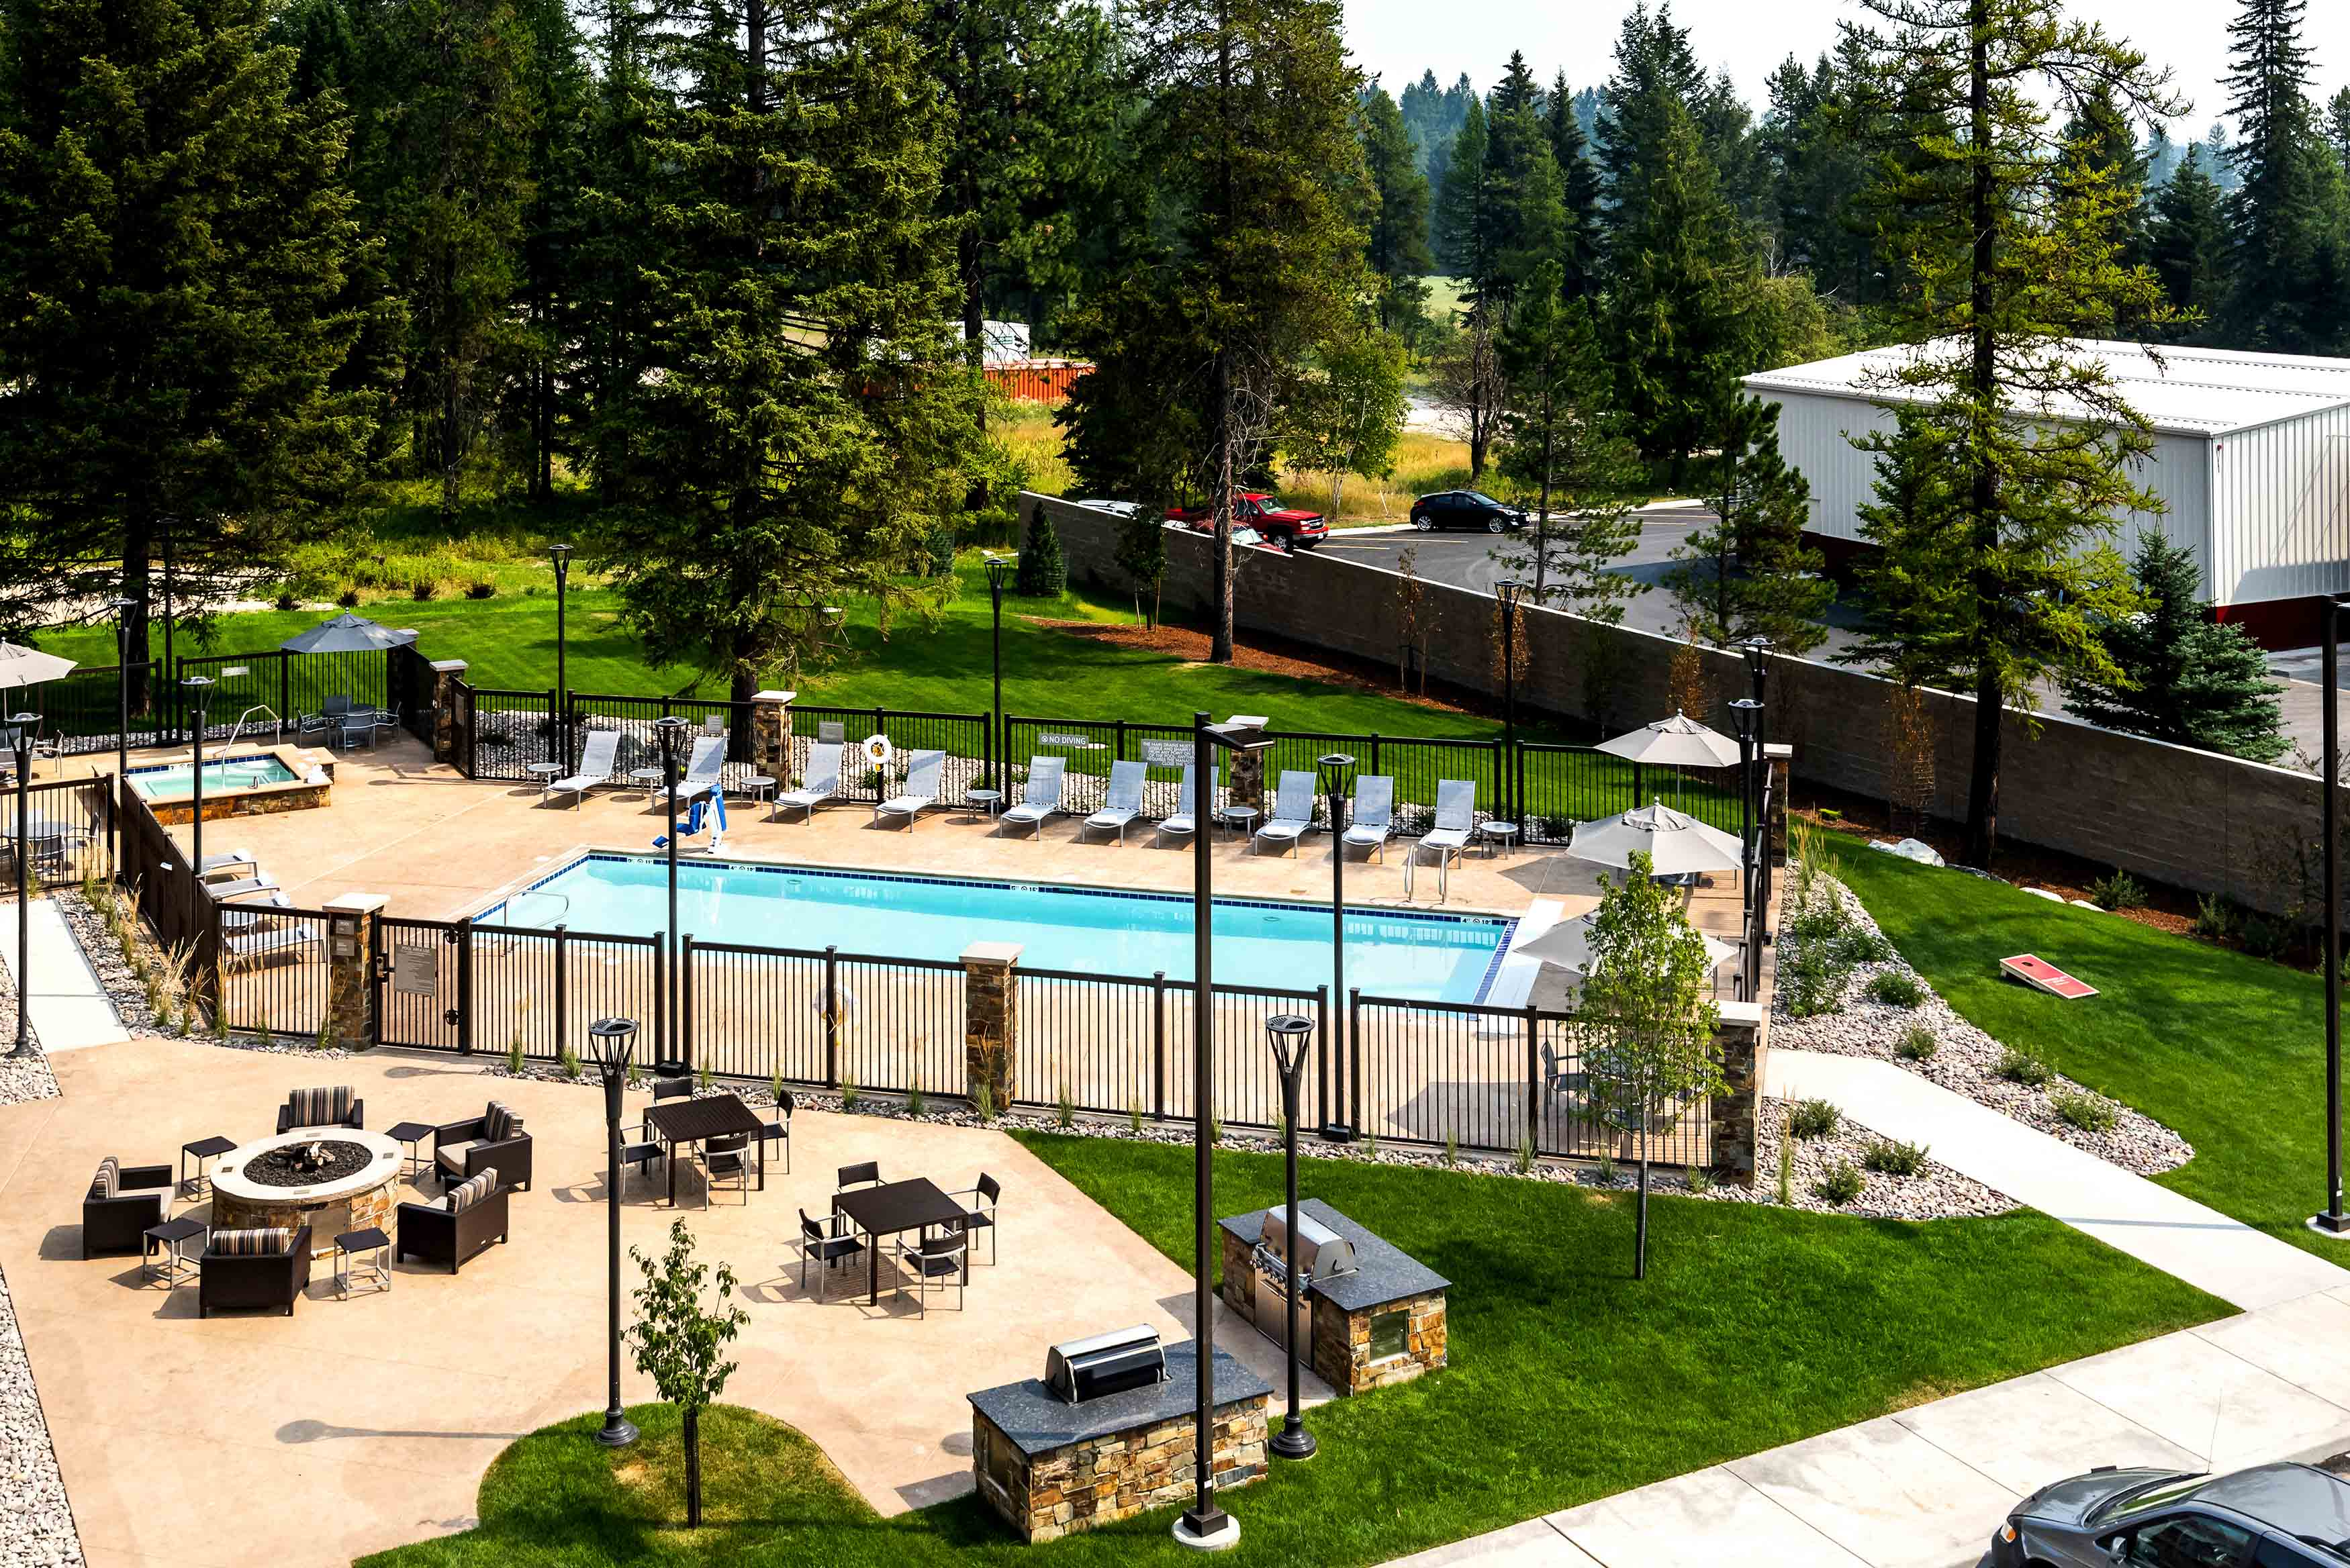 Towne-place-suite-marriott-hotels-towneplace-hotel-whitefish-montana-pool-rooftop